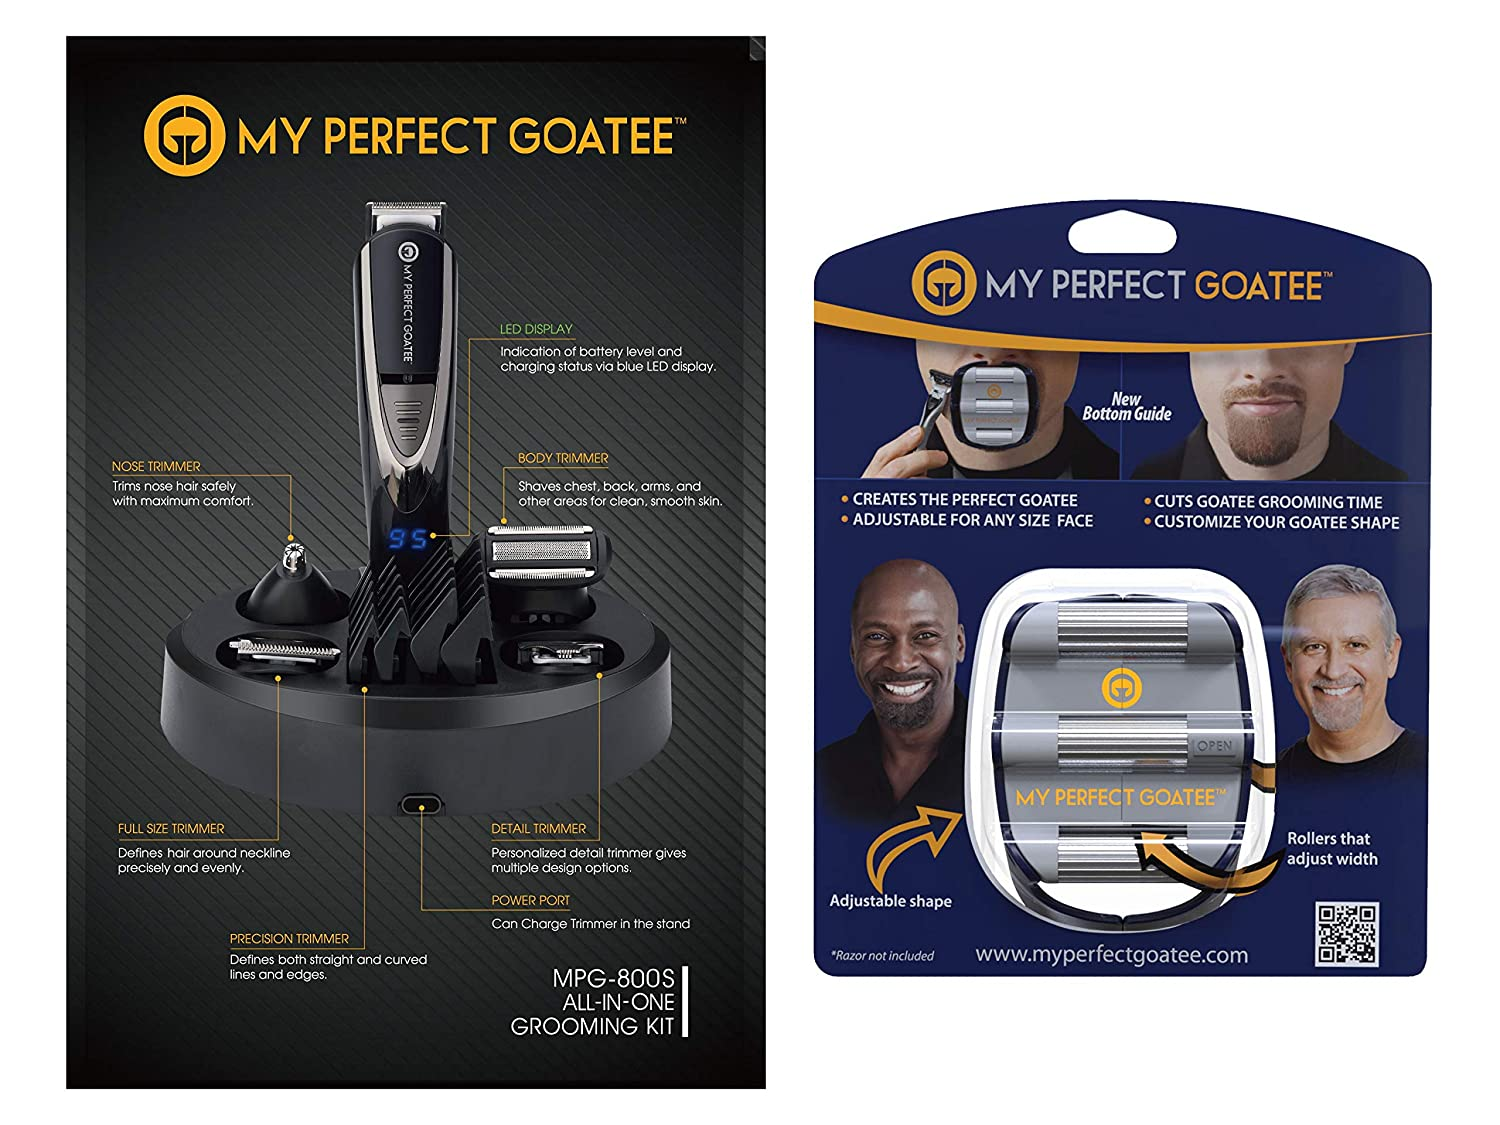 My Perfect Goatee Shaving Template & Beard Trimmer (Goatee & Beard Trimmer plus Goatee Shaving Templat)